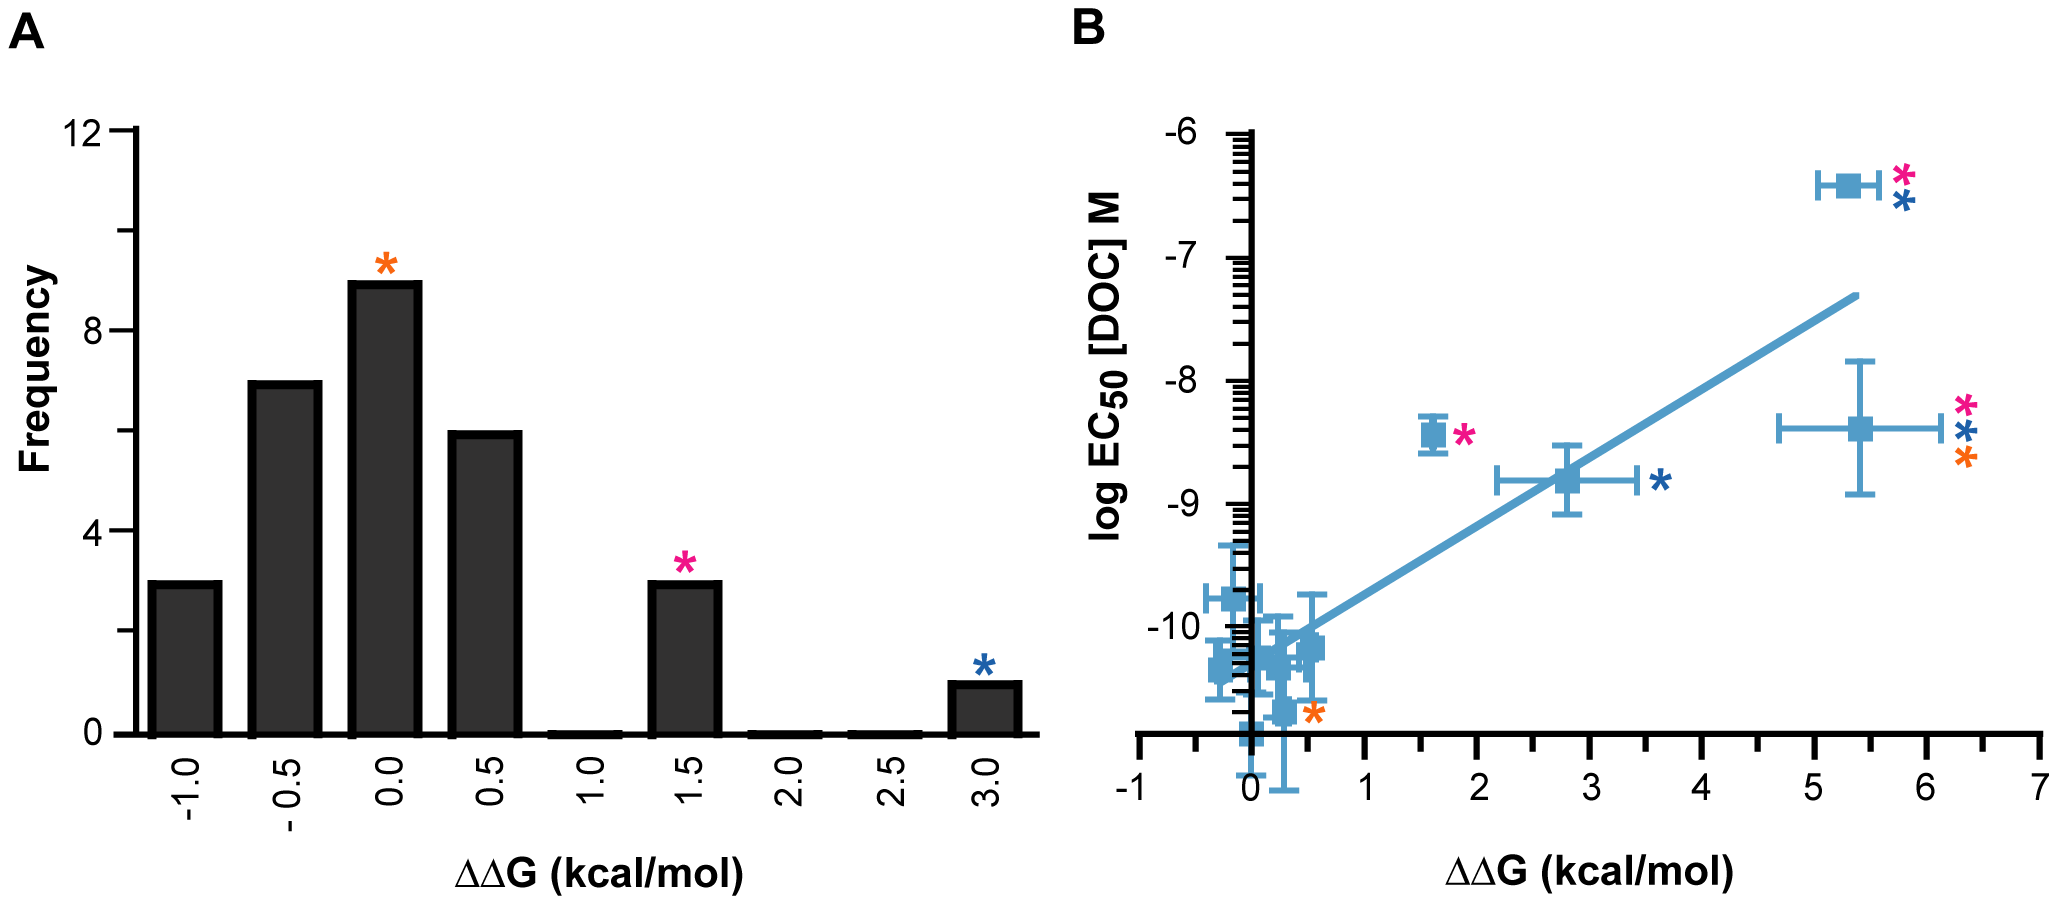 The effect of historical GR substitutions on AncCR protein stability, predicted by FoldX <em class=&quot;ref&quot;>[<b>43</b>]</em>.